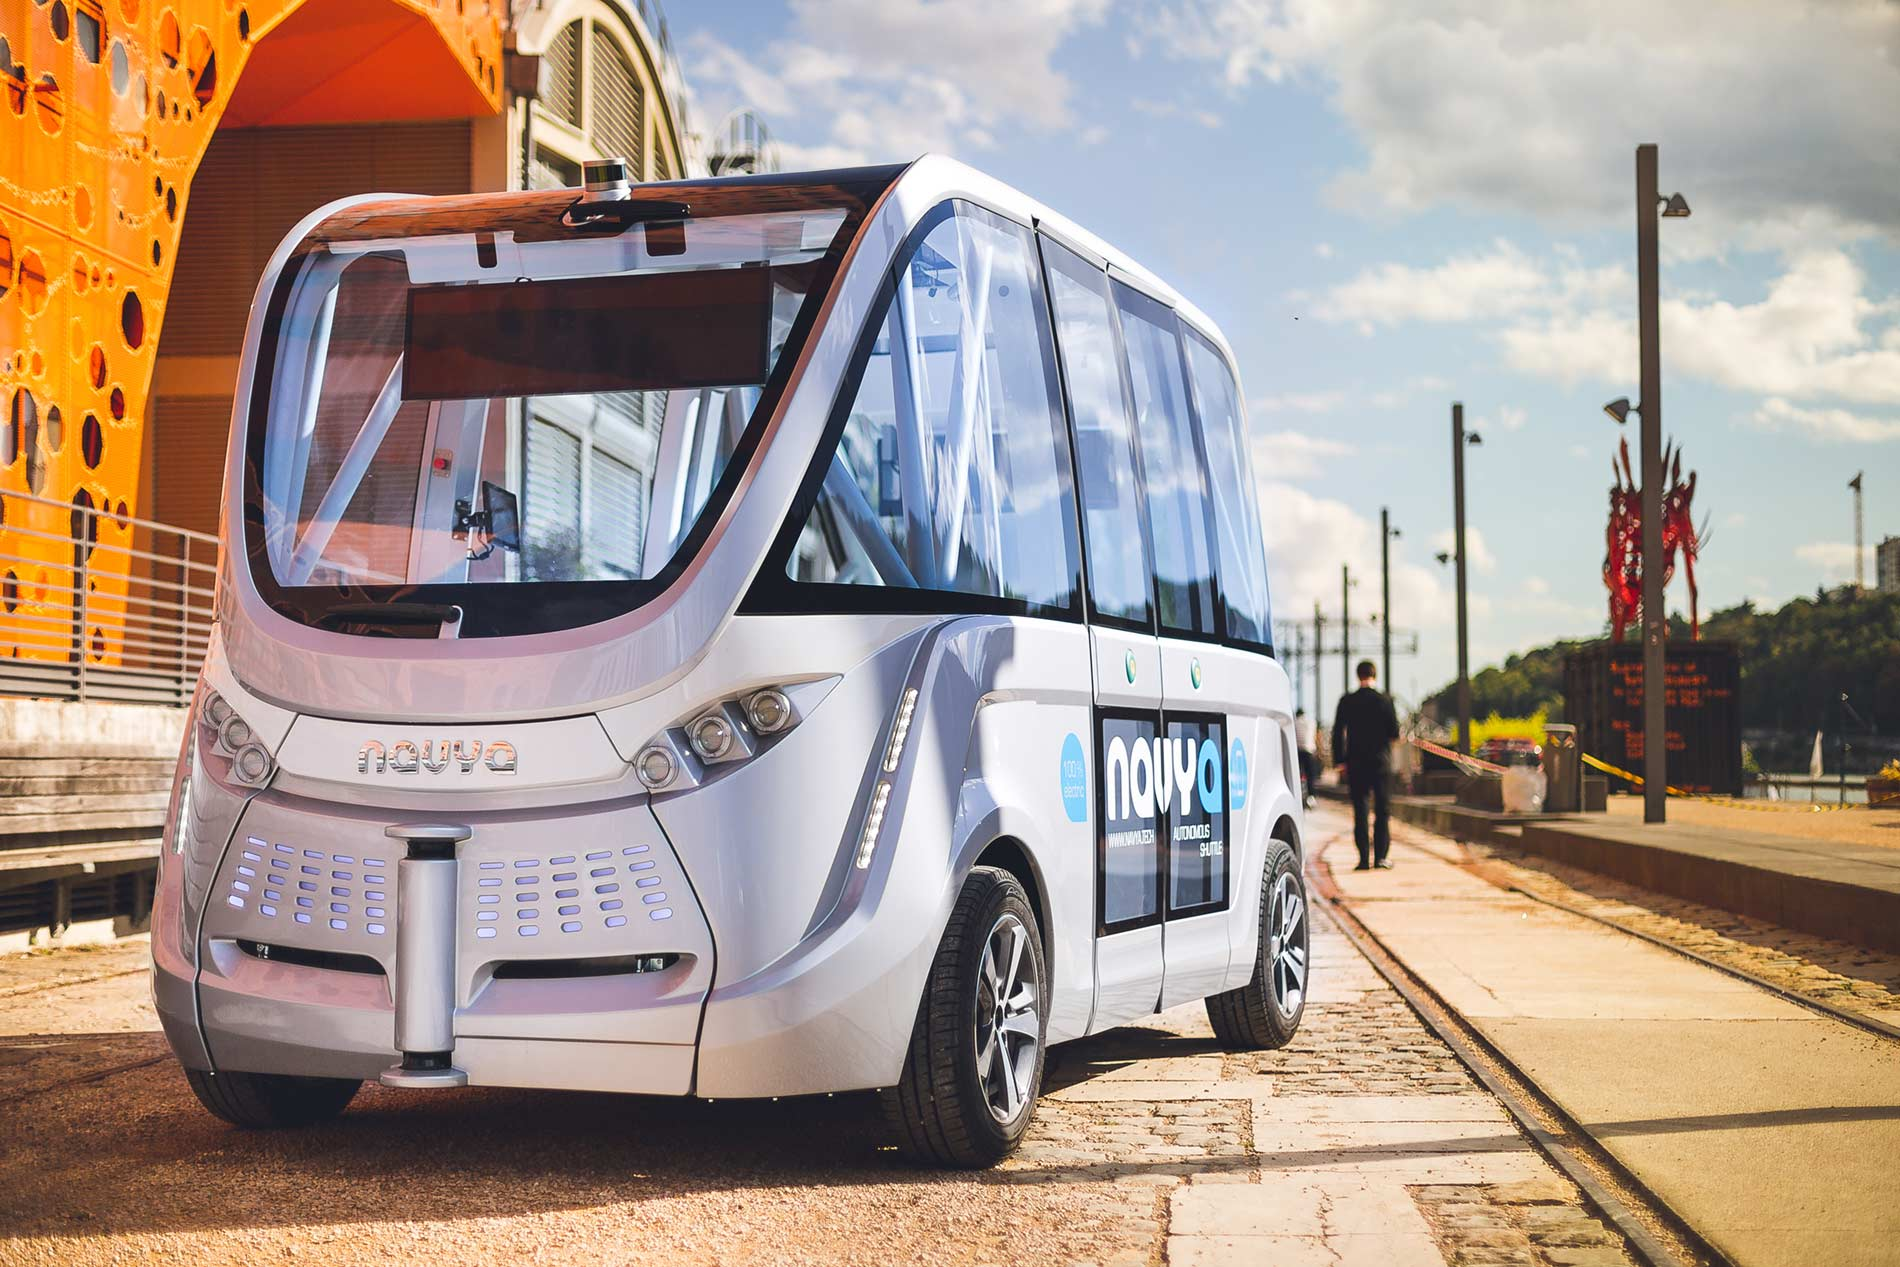 NAVYA Names Beep as Exclusive Dealer and Preferred Partner for Shared Mobility Autonomous Vehicle Research in Lake Nona